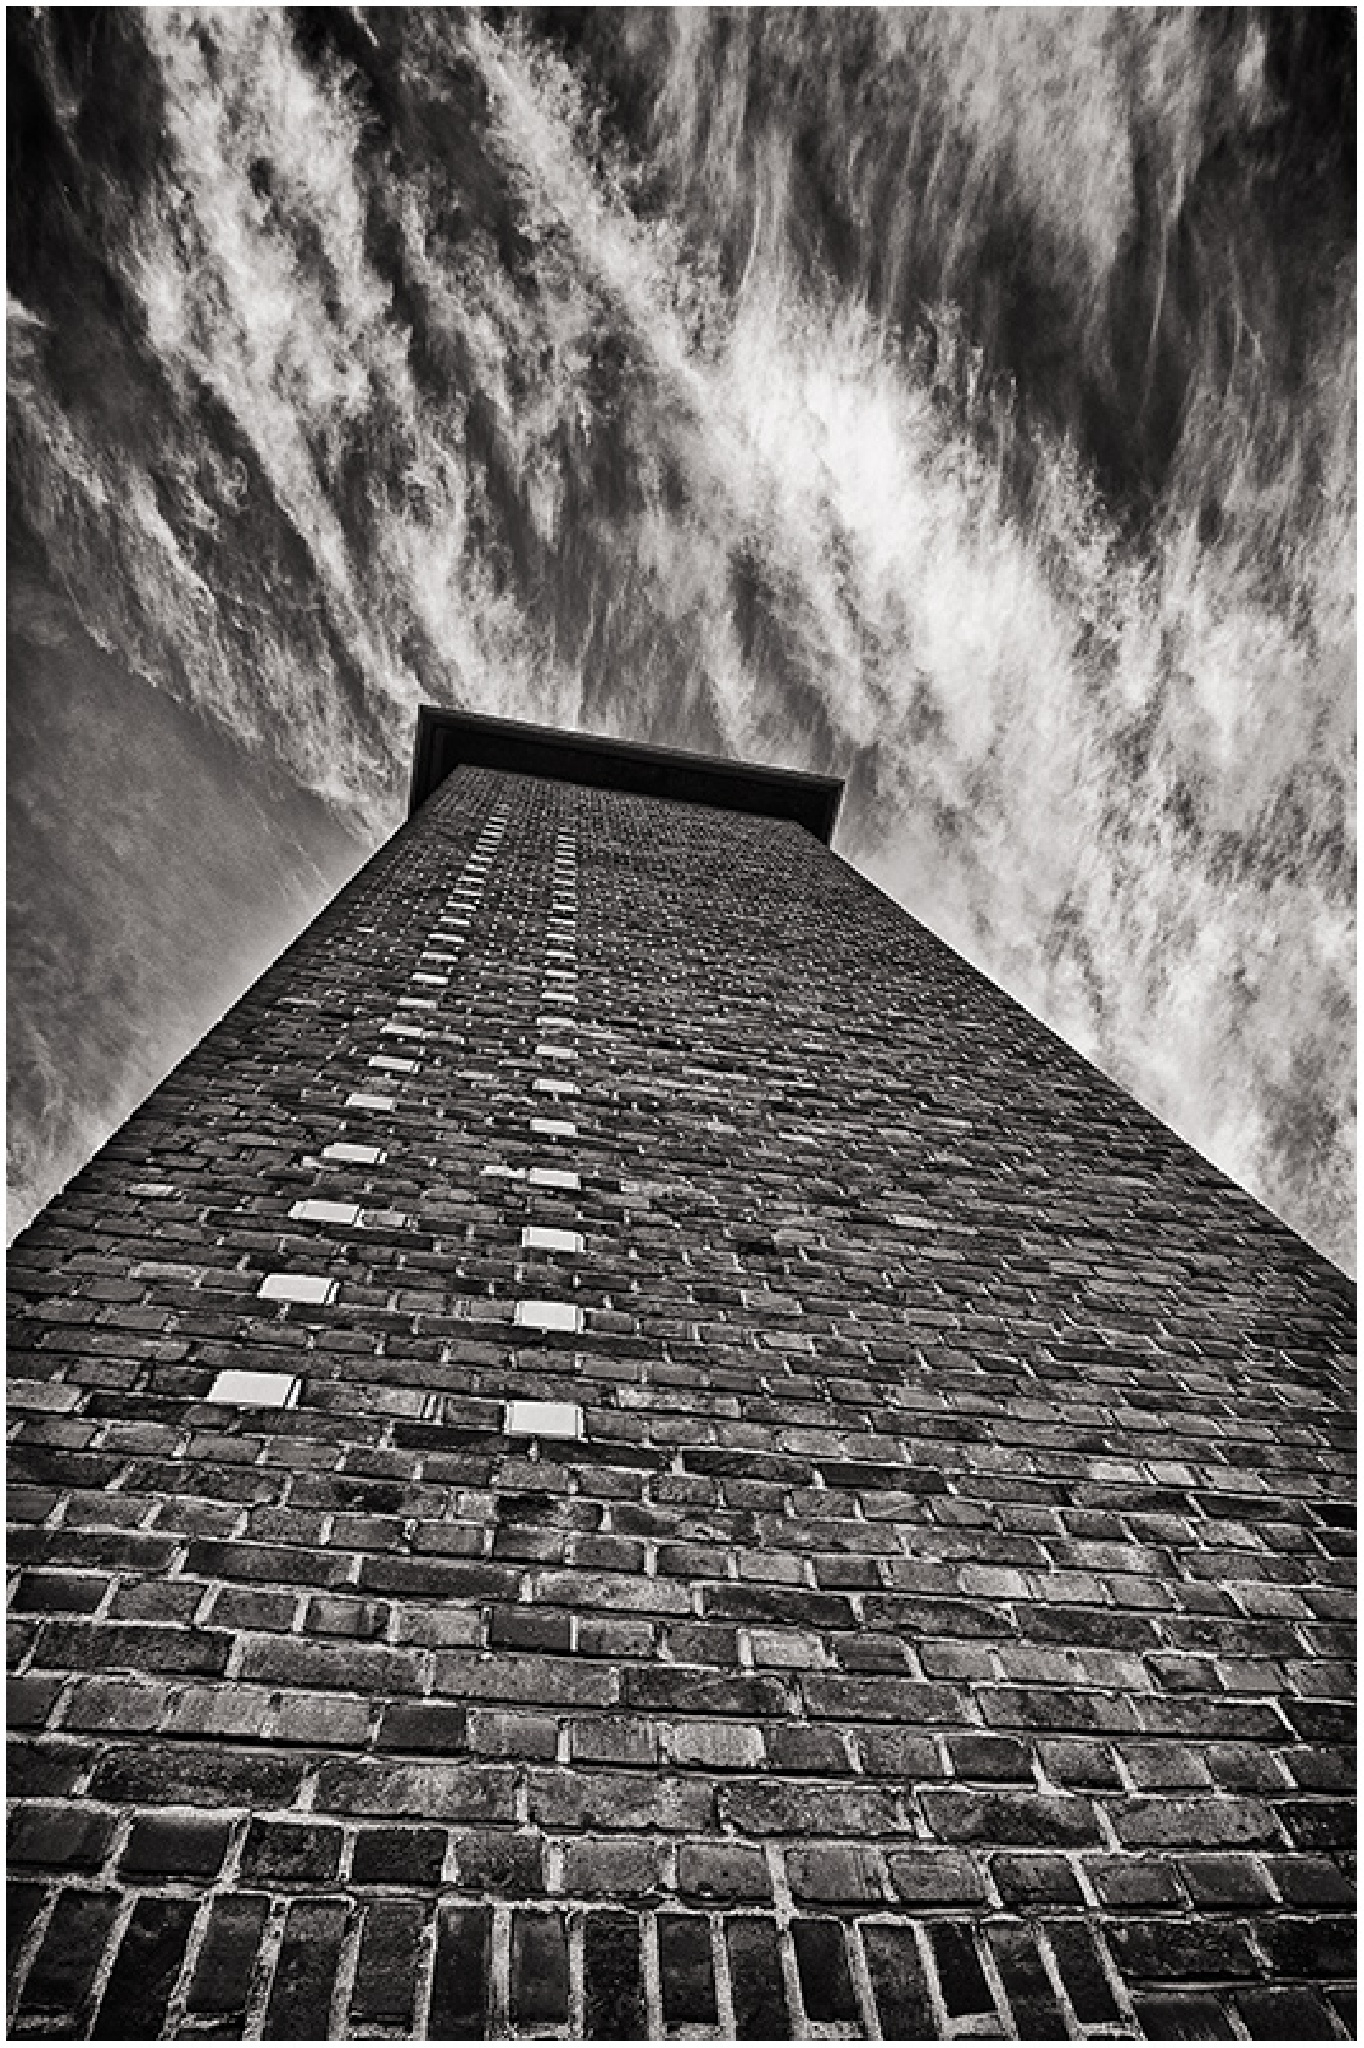 clouds highway by agfa.scala ...the eye